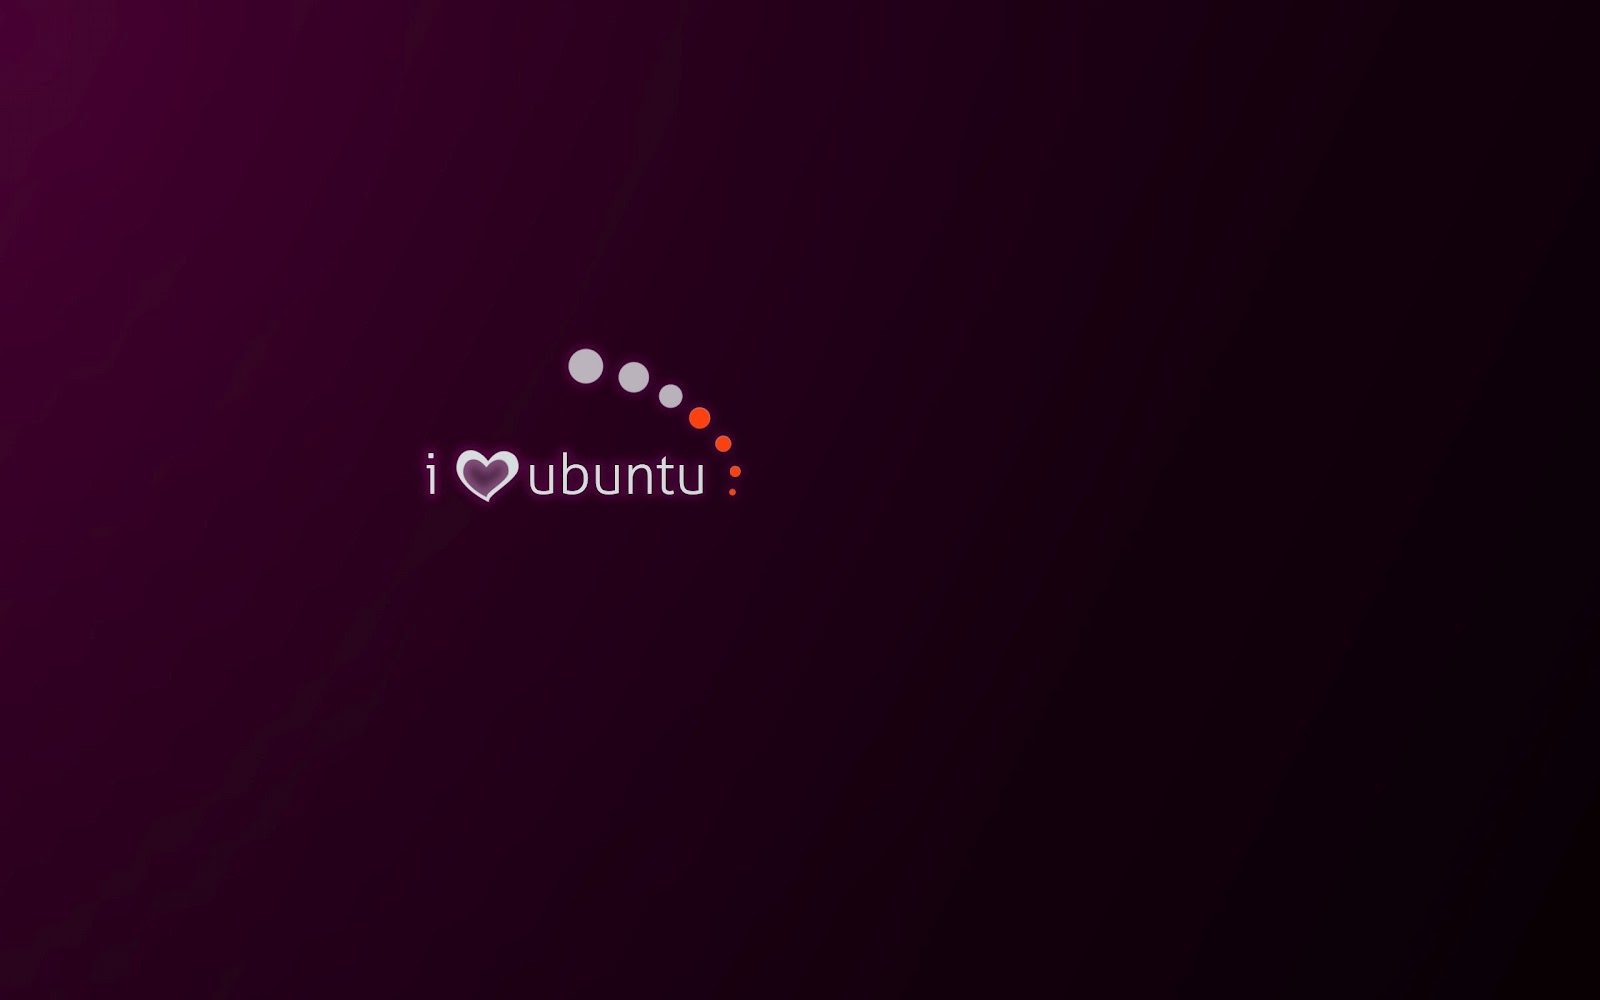 Wallpaper Collection For Your Computer and Mobile Phones ... Ubuntu Server Wallpaper